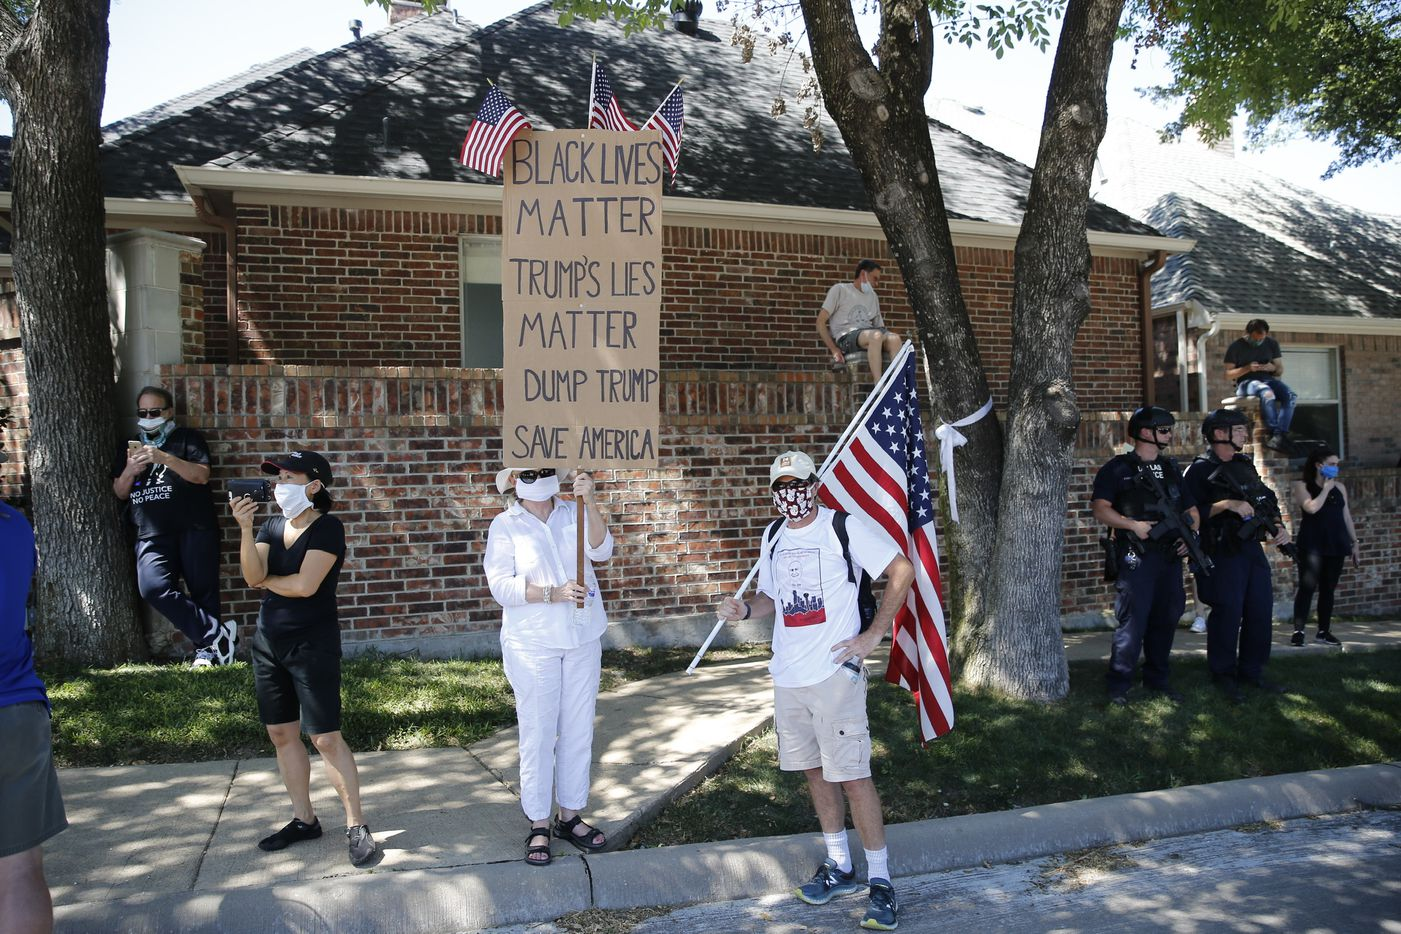 Anti-Trump protesters Dianne and Barry Smith, of Dallas, hold signs near Gateway Church in Dallas, on Thursday, June 11, 2020. President Donald Trump is in town for multiple events. (Vernon Bryant/The Dallas Morning News)